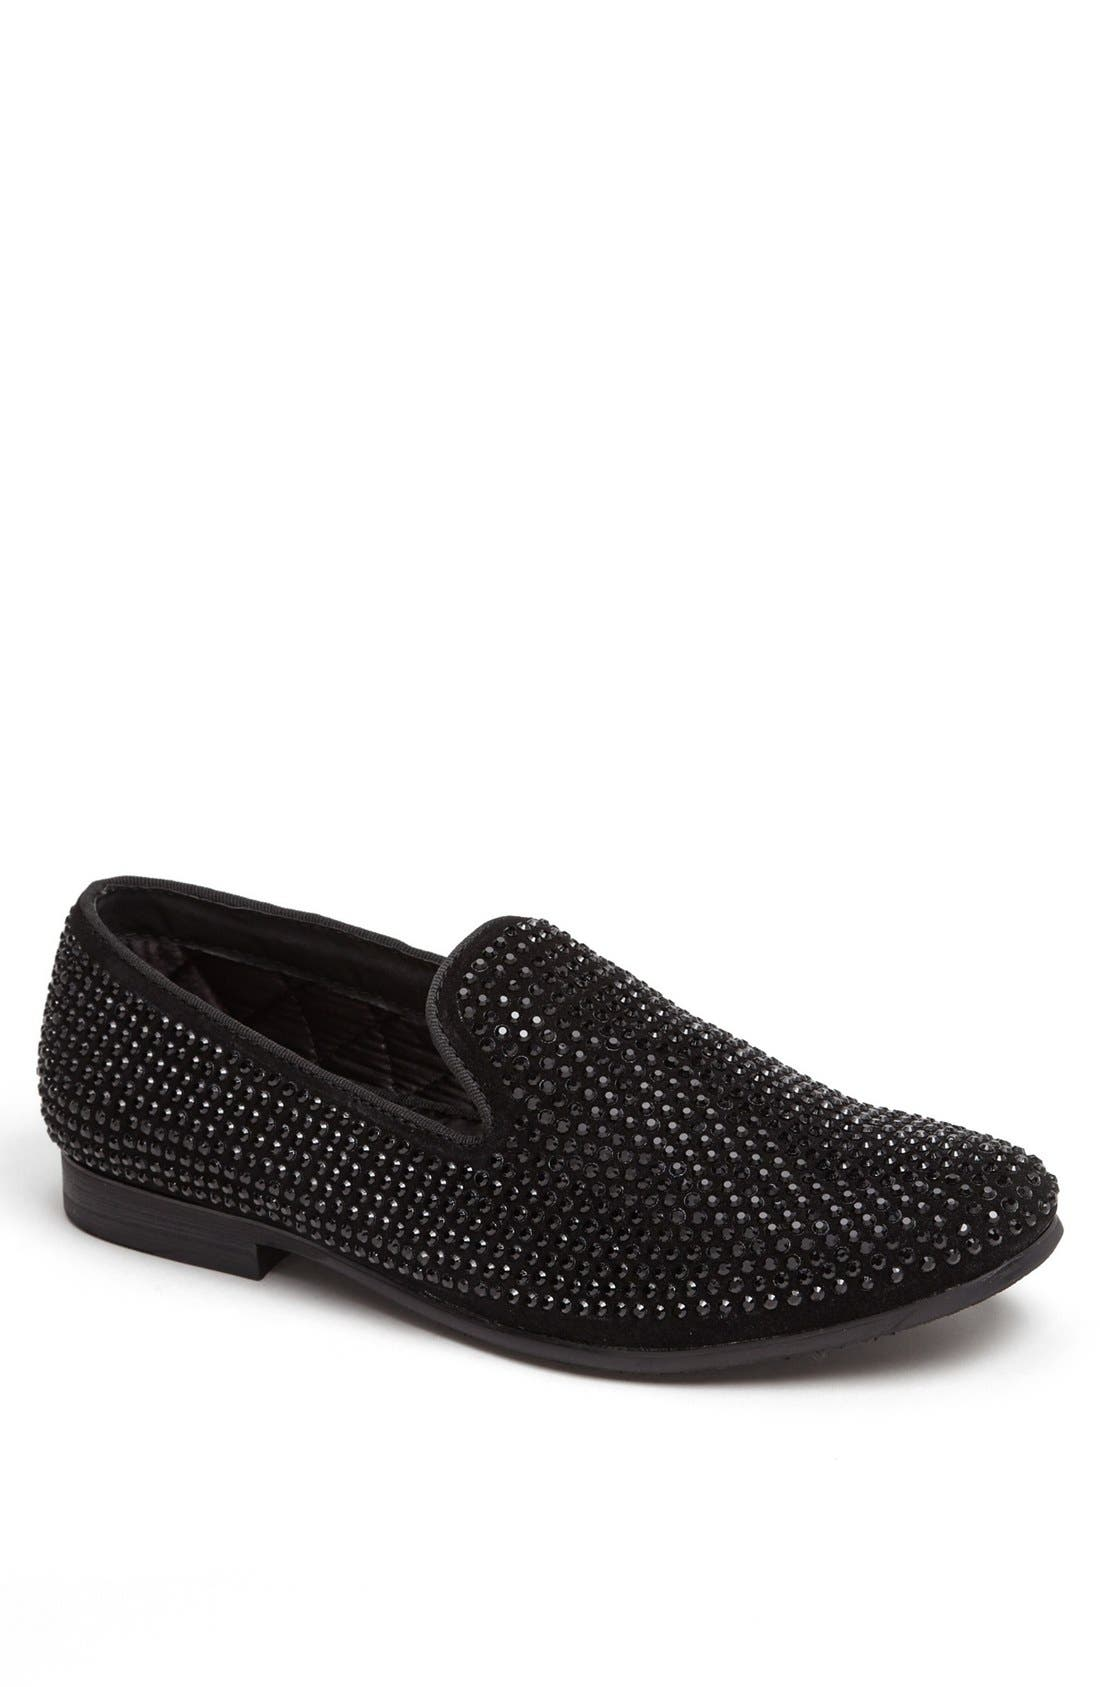 'Caviarr' Slip-On,                         Main,                         color, BLACK RHINESTONES